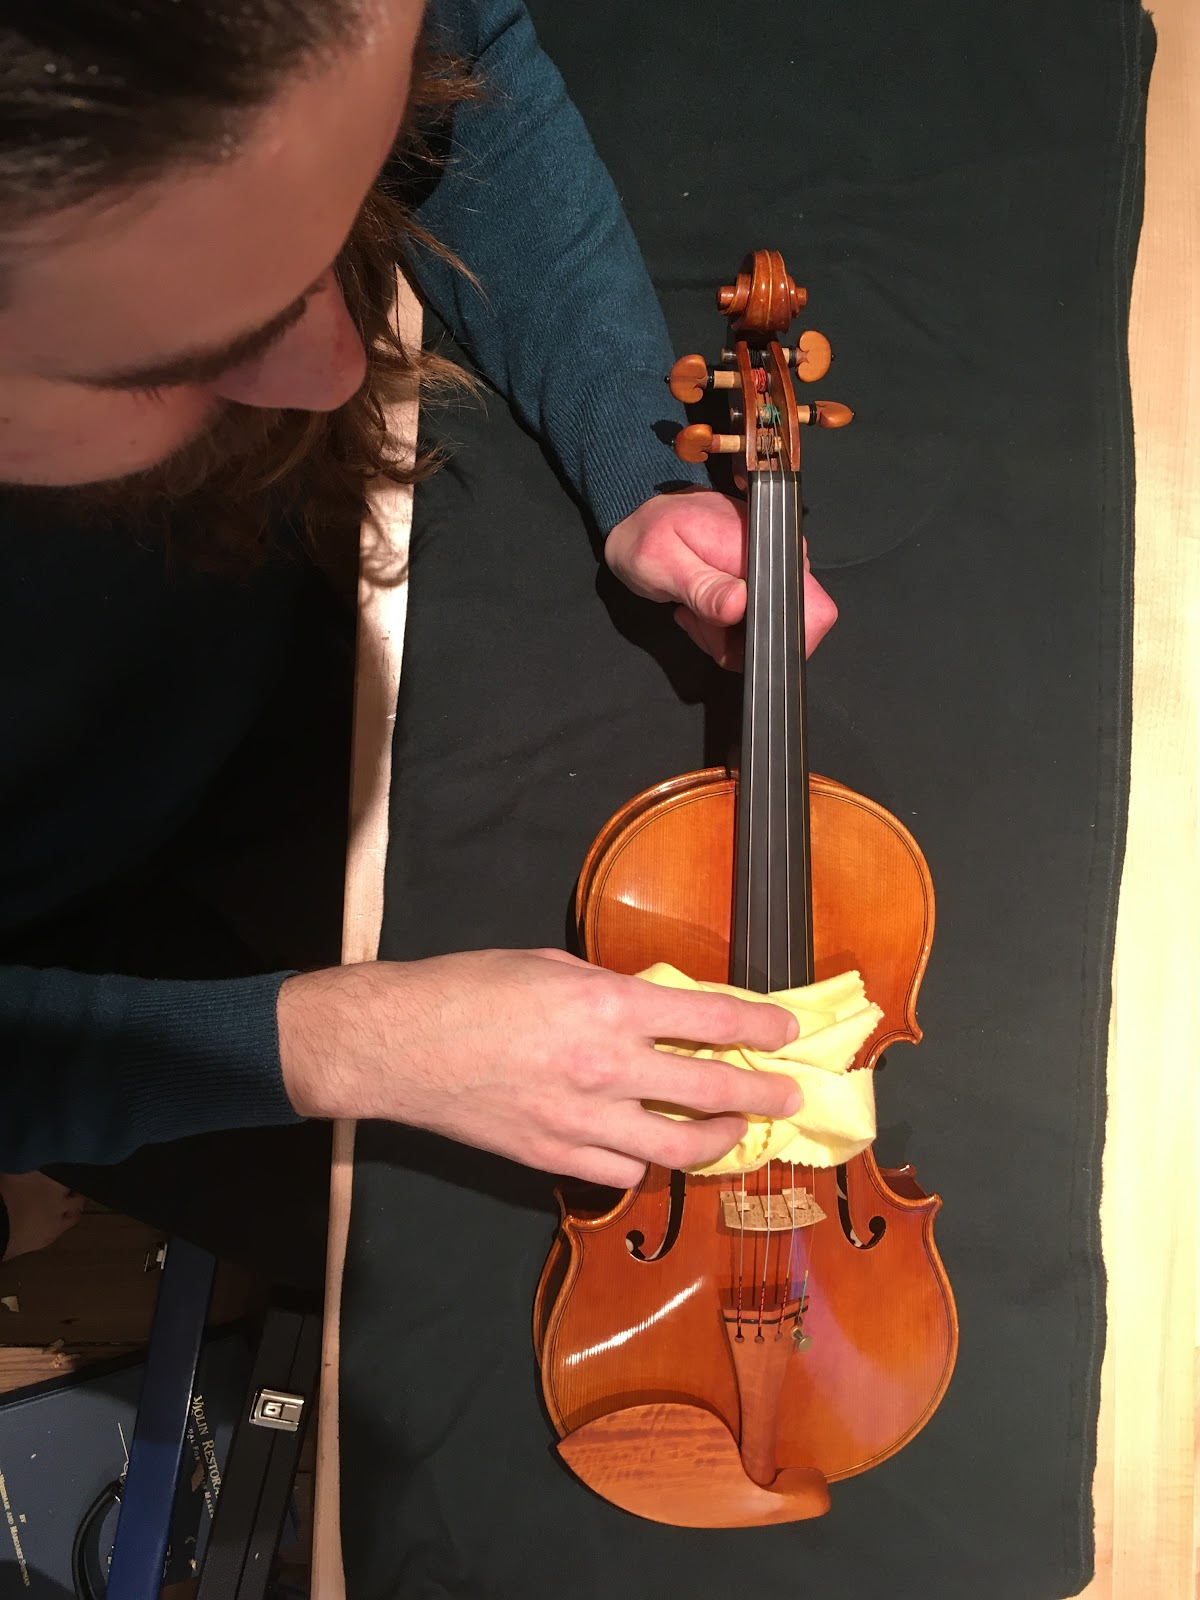 Cleaning Strings with towel